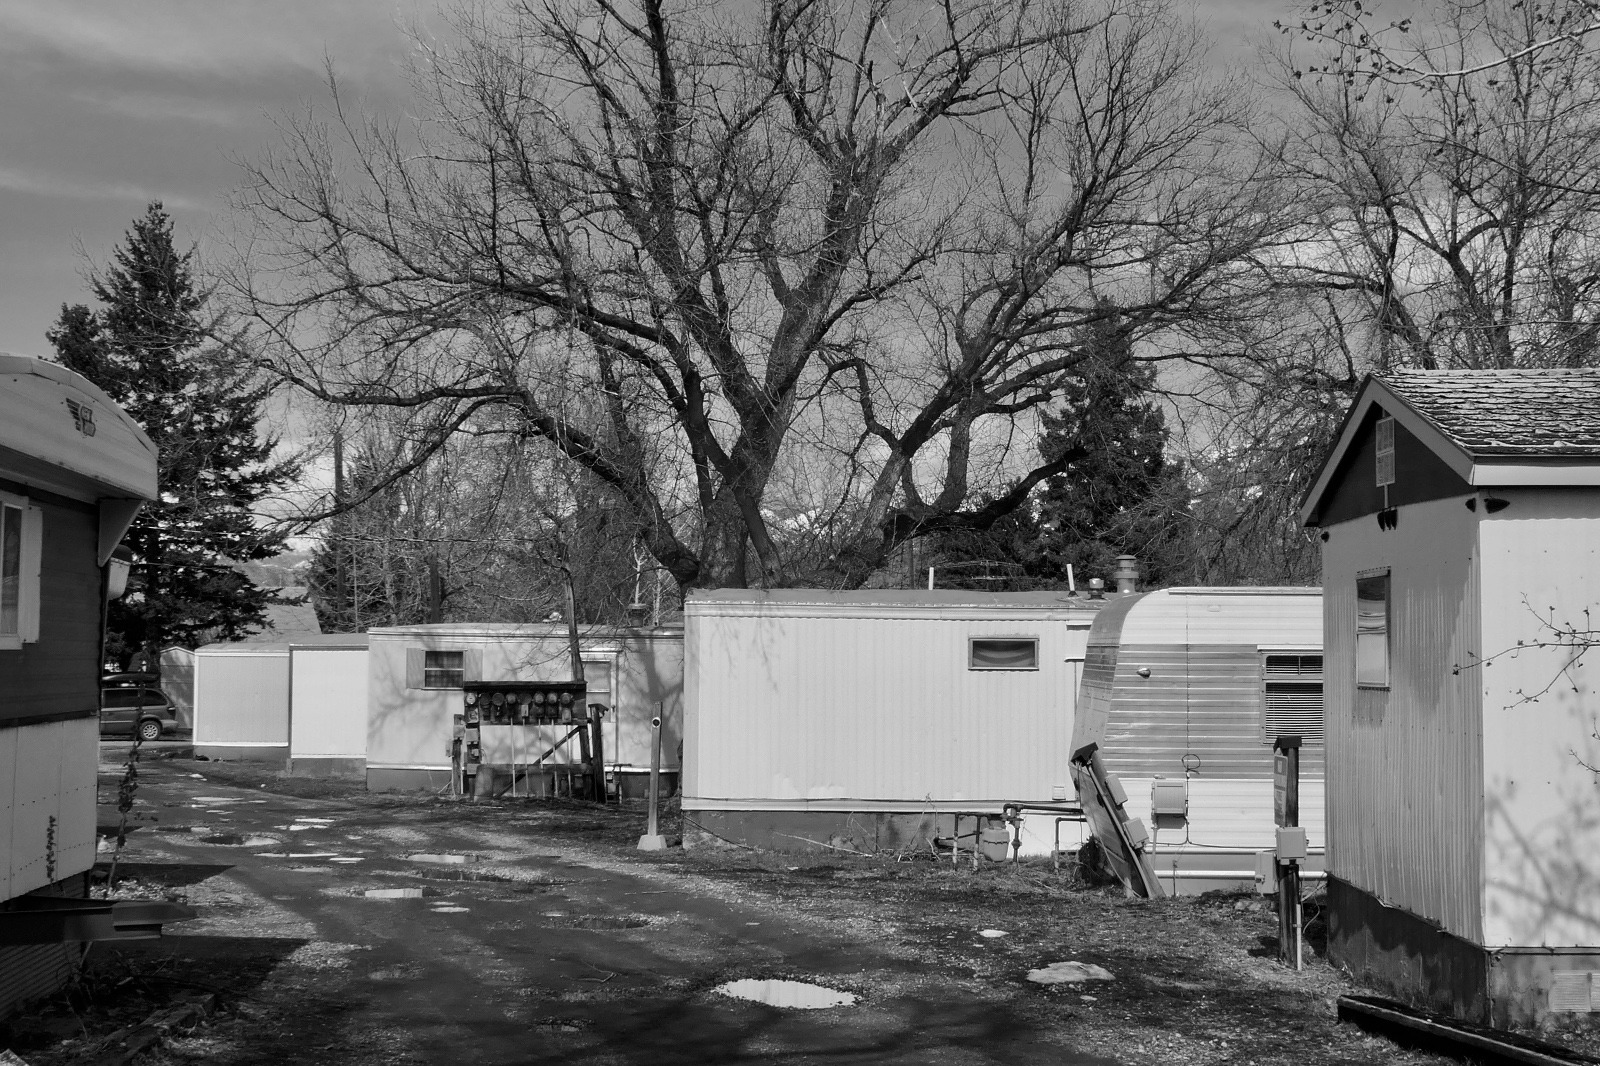 Soon this trailer park in north Bozeman will be replaced and gone too the working-class residents who called it home.  Here's a question: when gentrification pushes people out of a community, doesn't anyone notice when they leave?  Photo by Tim Crawford